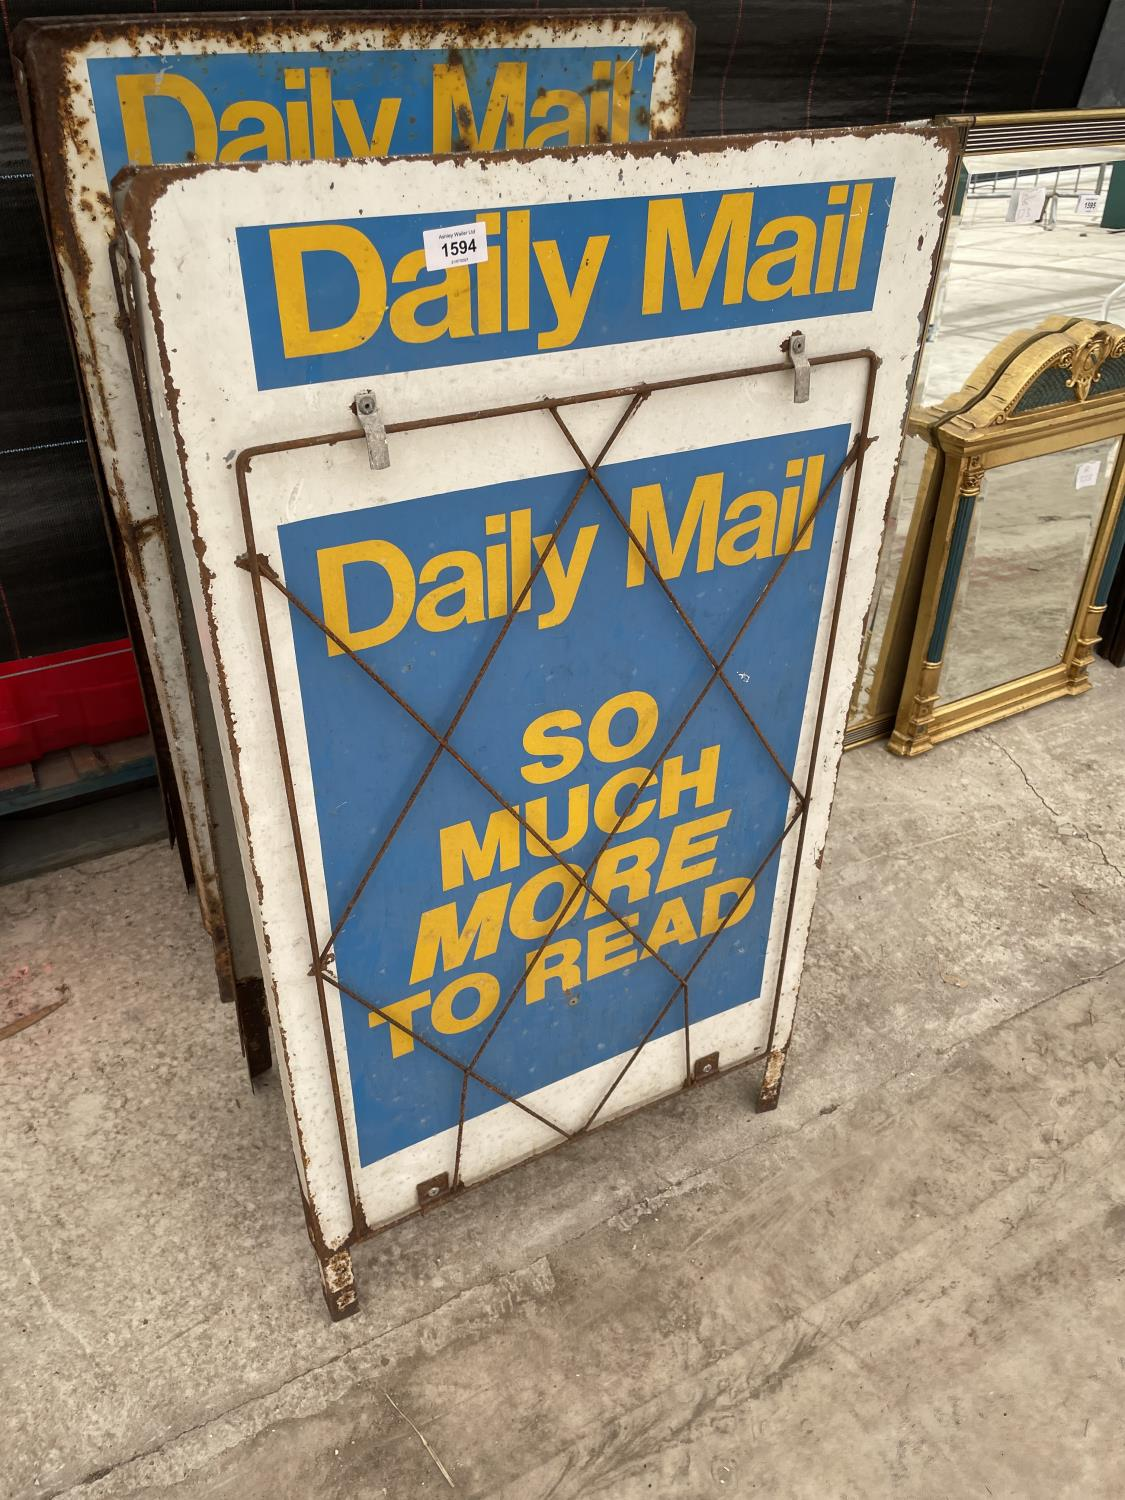 A PAIR OF DAILY MAIL A BOARD NEWS STANDS - Image 4 of 8